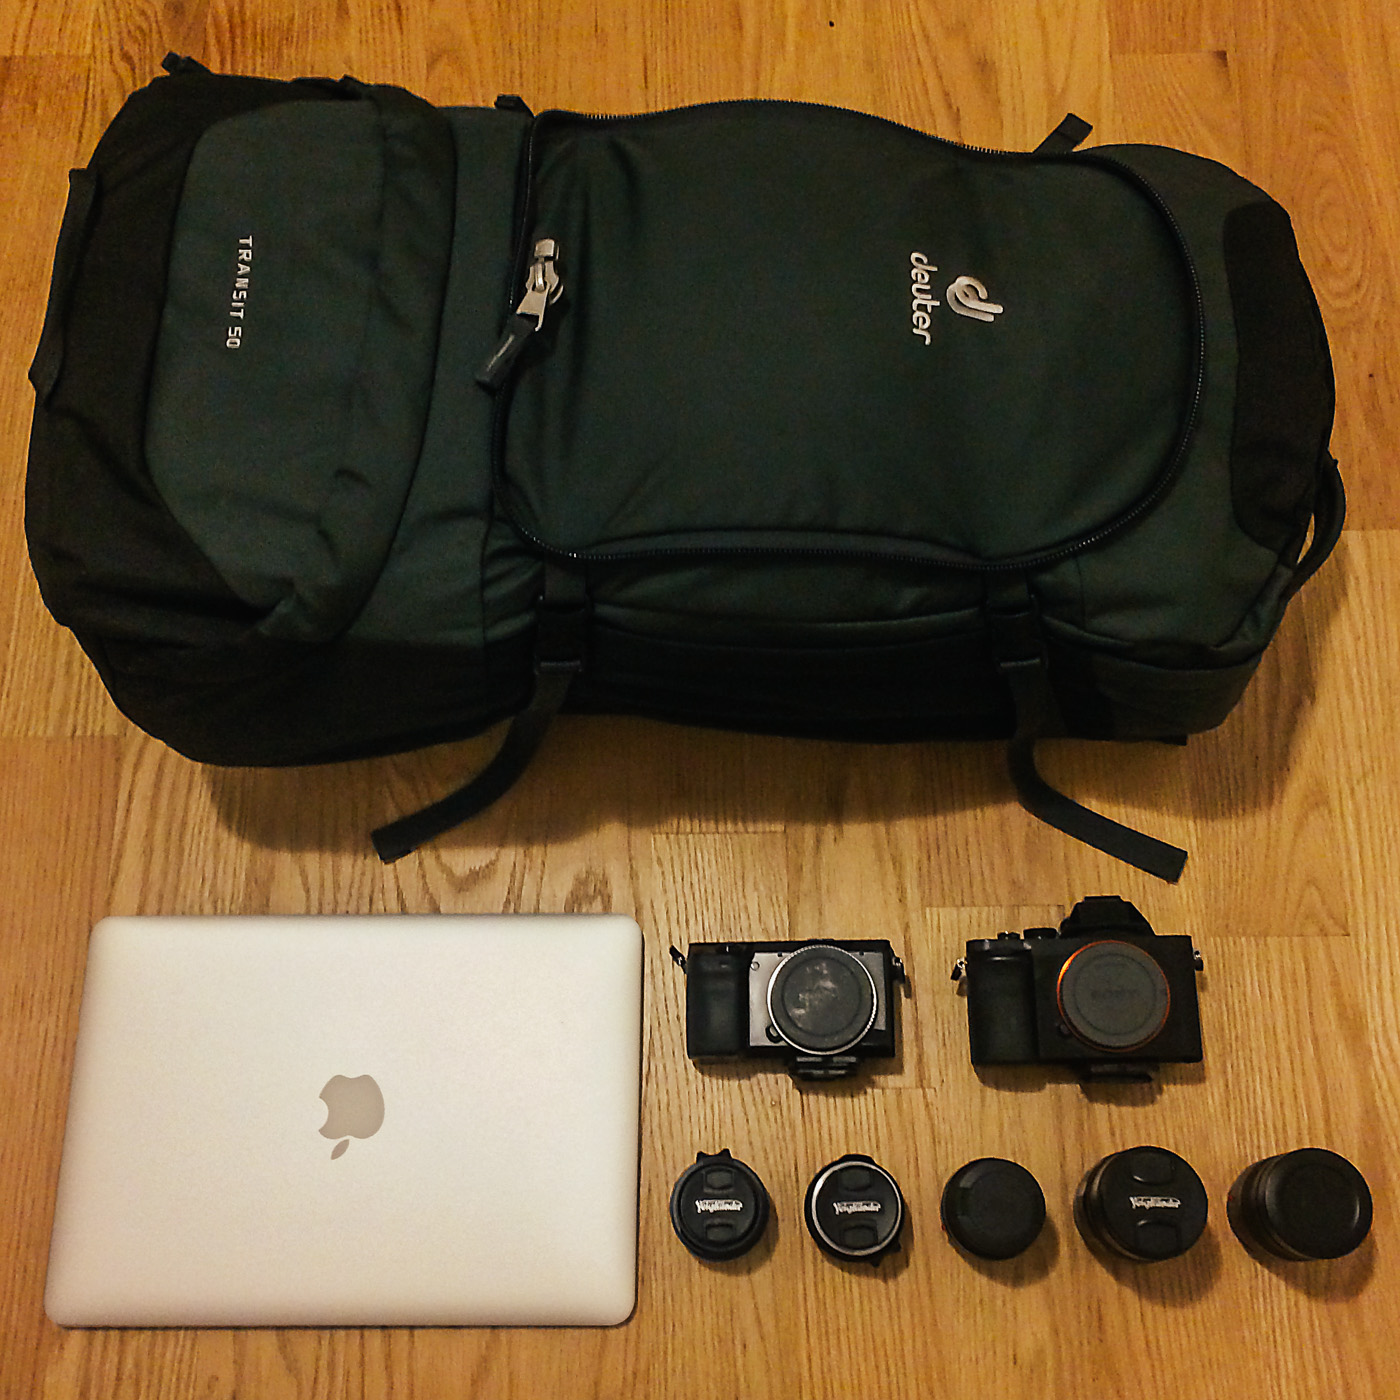 "TRAVELING LIGHT. DEUTER 50 LITER PACK, 13"" MACBOOK AIR, SONY A7R, SONY NEX-7, VOIGTLANDER 21MM, VOIGTLANDER 35M, LEICA SUMMICRON 50MM, VOIGTLANDER 75MM, LEICA SUMMICRON 90MM"